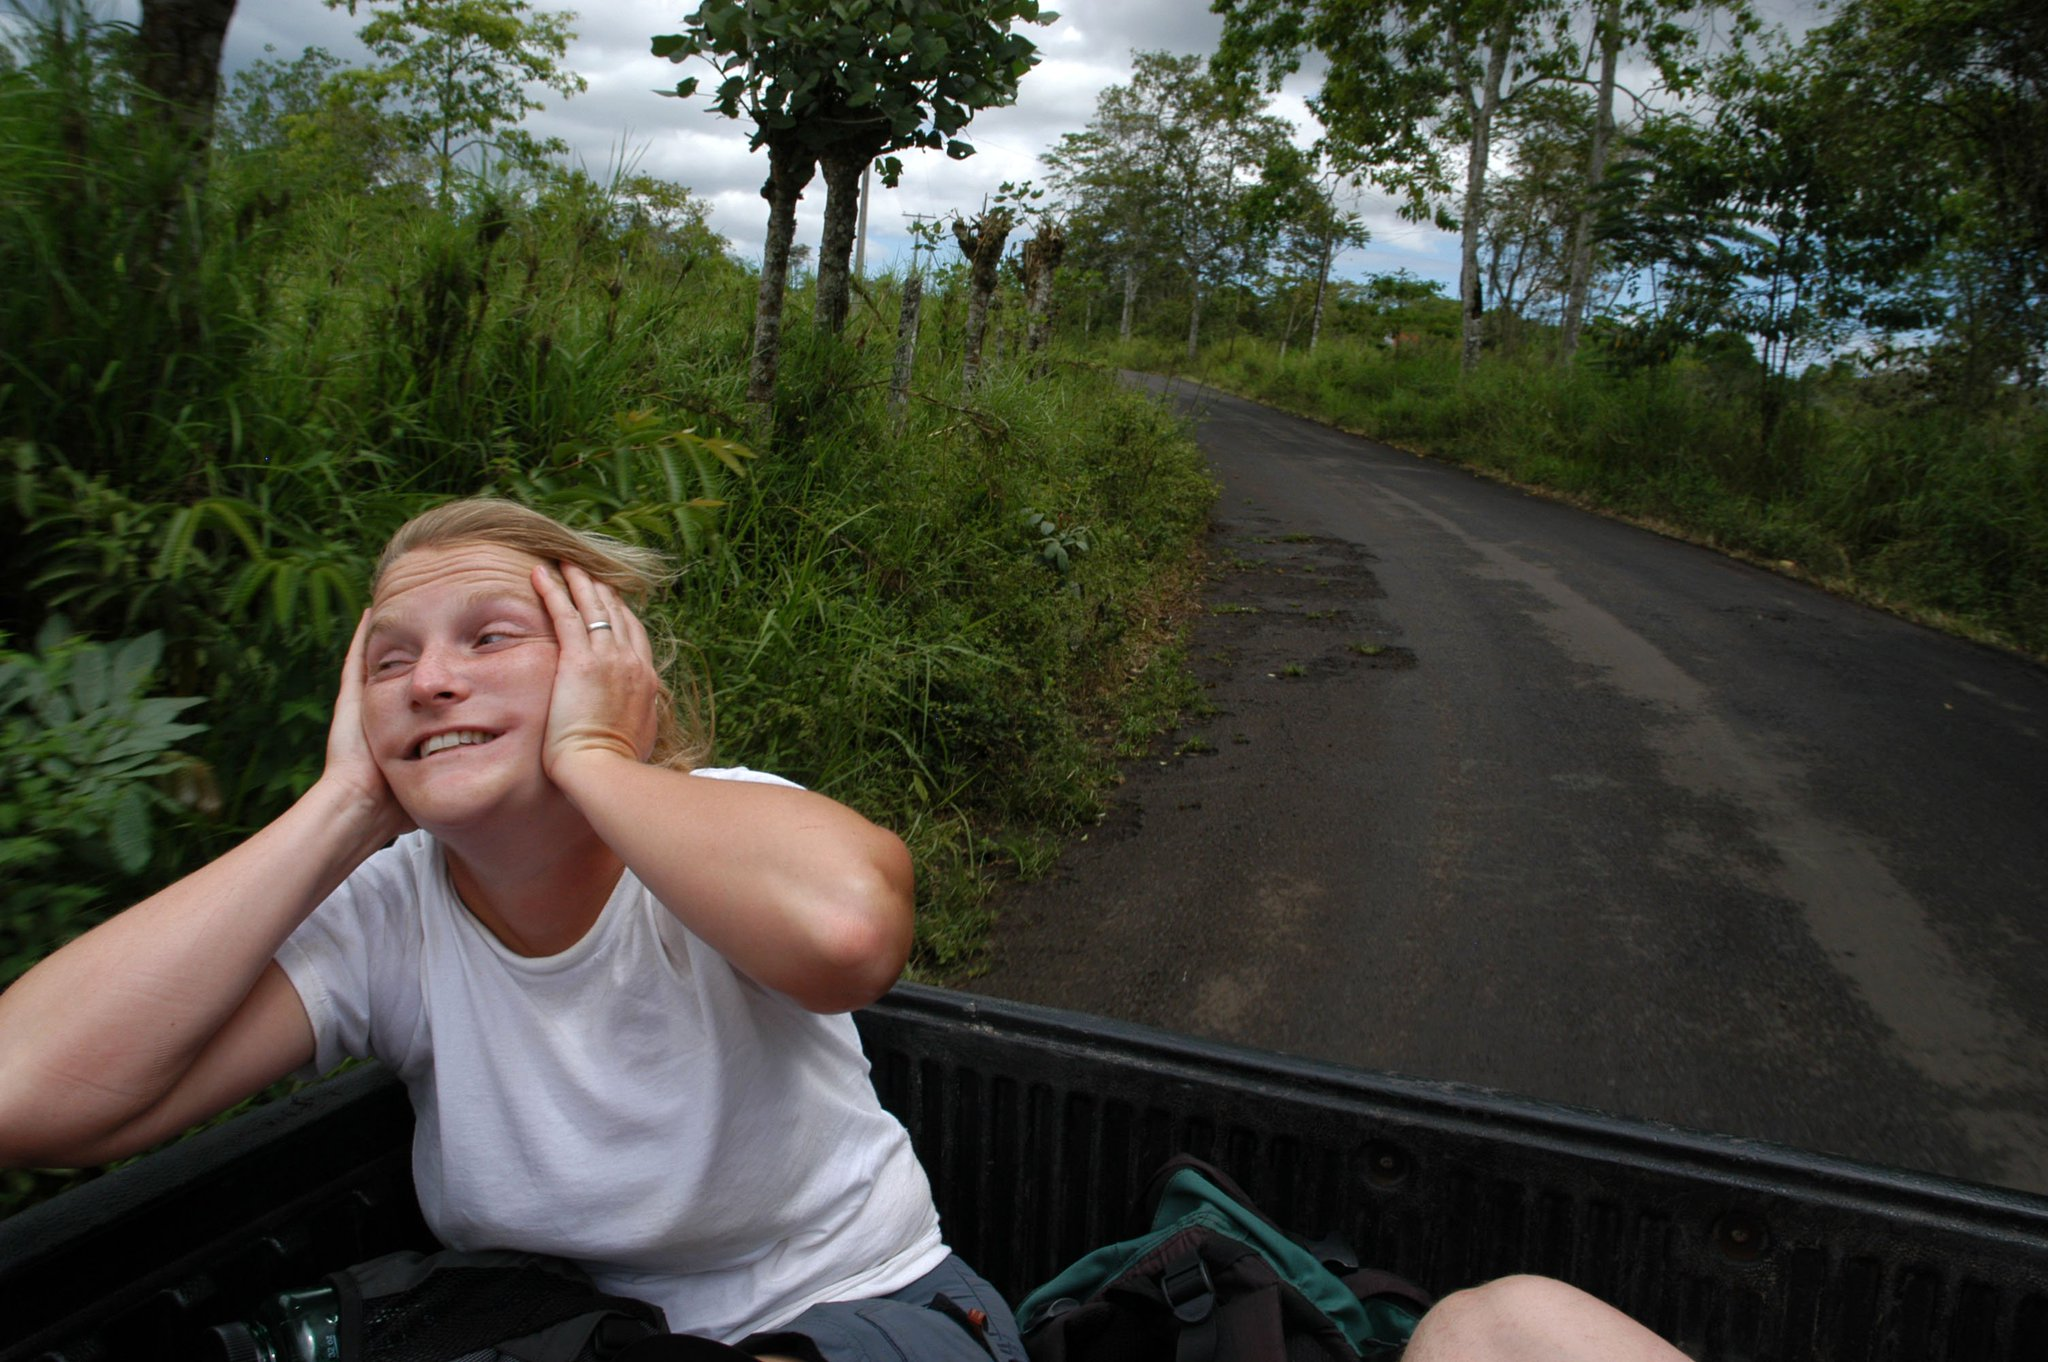 In appreciation of my goofy colleagues 16: @SarahHuberVIMS shows how to ride in the back of a Galapagos taxi. https://t.co/y771F8Uwga